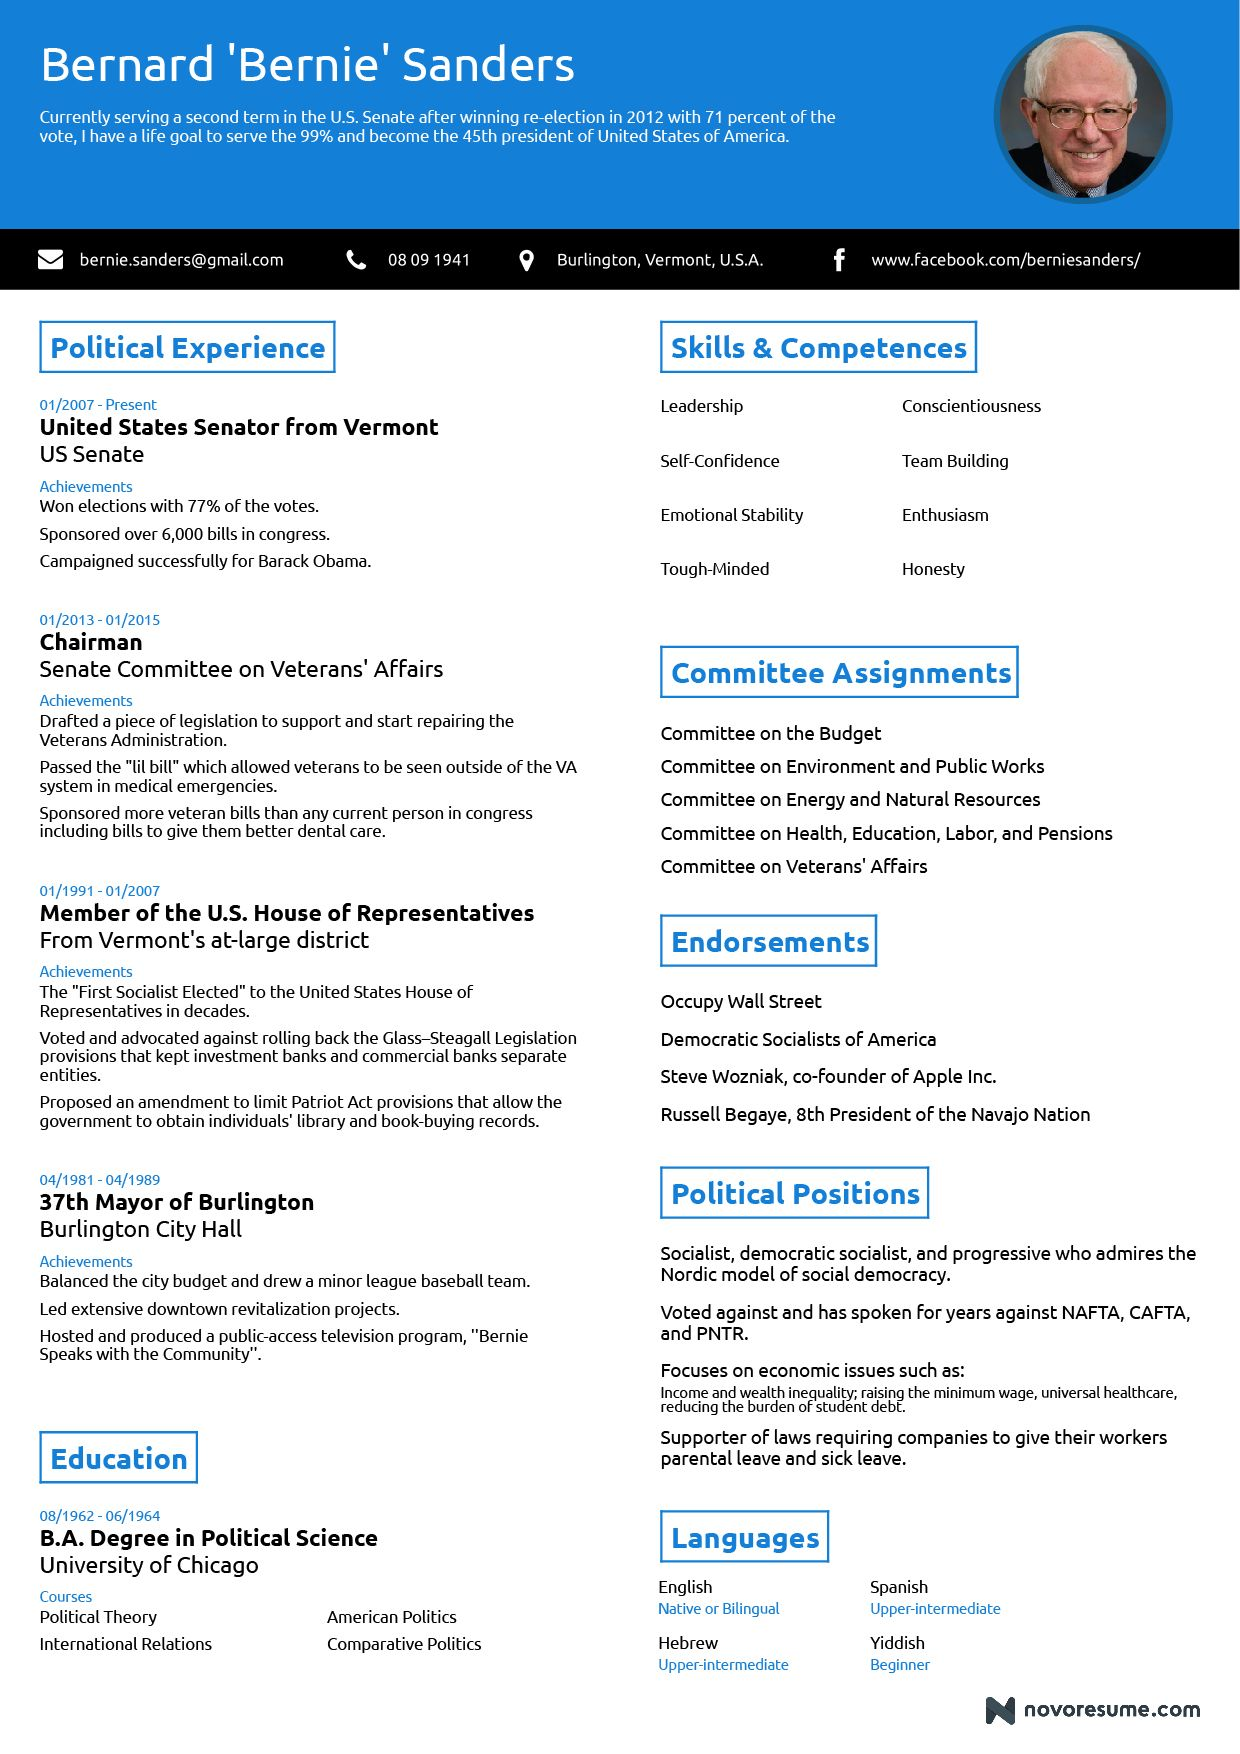 One Page Professional Resume Highlighting The Professional Competences Of Bernie Sanders Create Y Free Resume Builder Free Resume Template Word Resume Builder